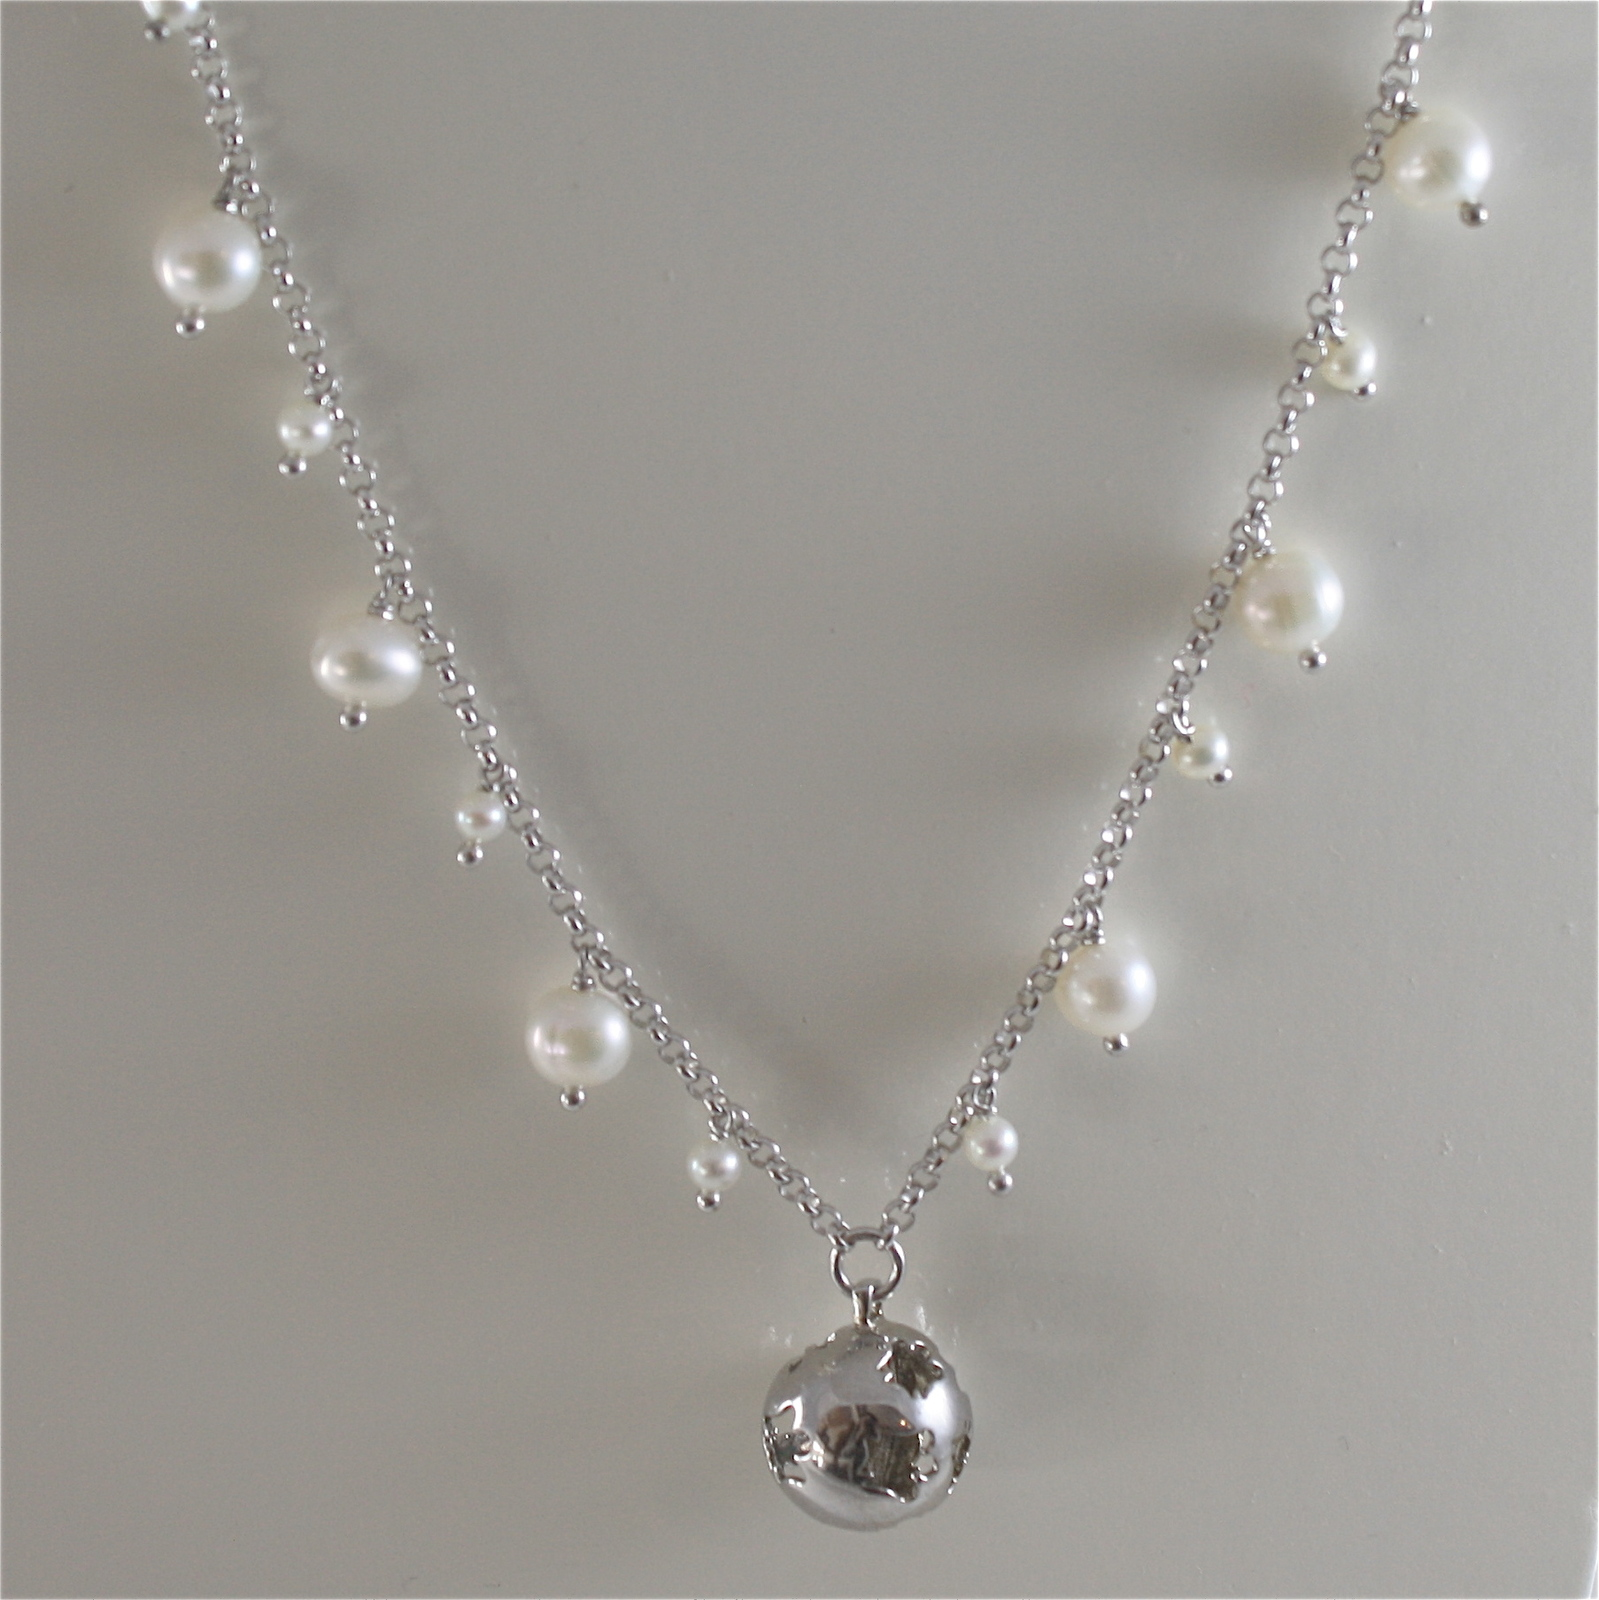 925 RODIUM SILVER NECKLACE WITH PEARLS AND BALL WITH ANGEL CHARMS, MADE IN ITALY